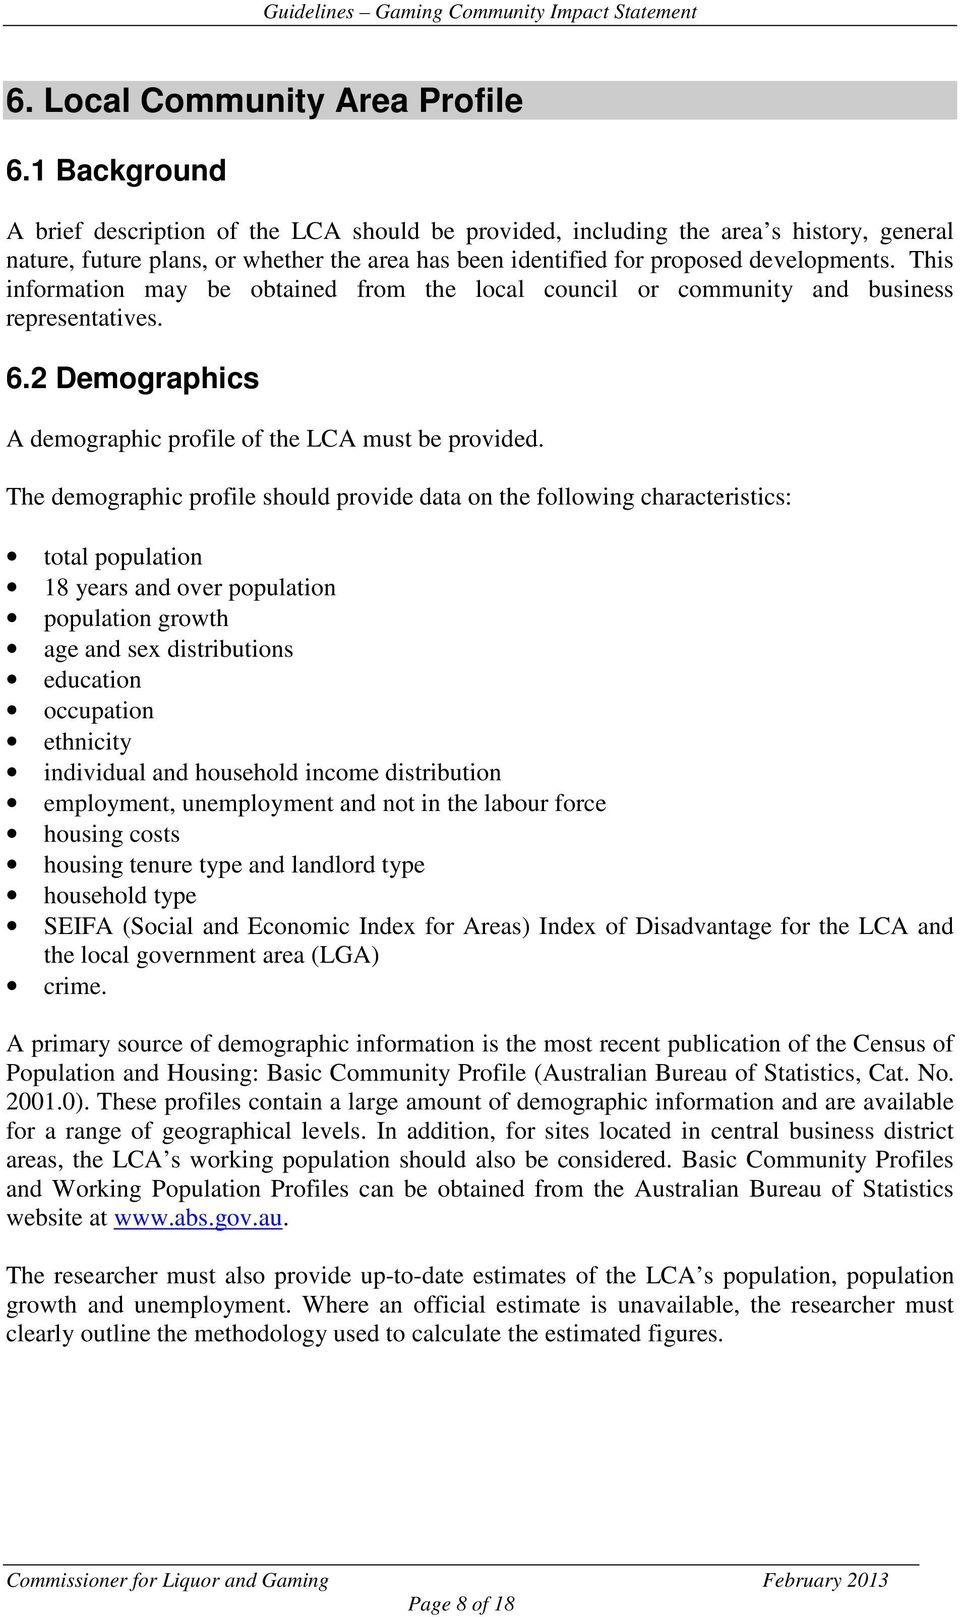 This information may be obtained from the local council or community and business representatives. 6.2 Demographics A demographic profile of the LCA must be provided.